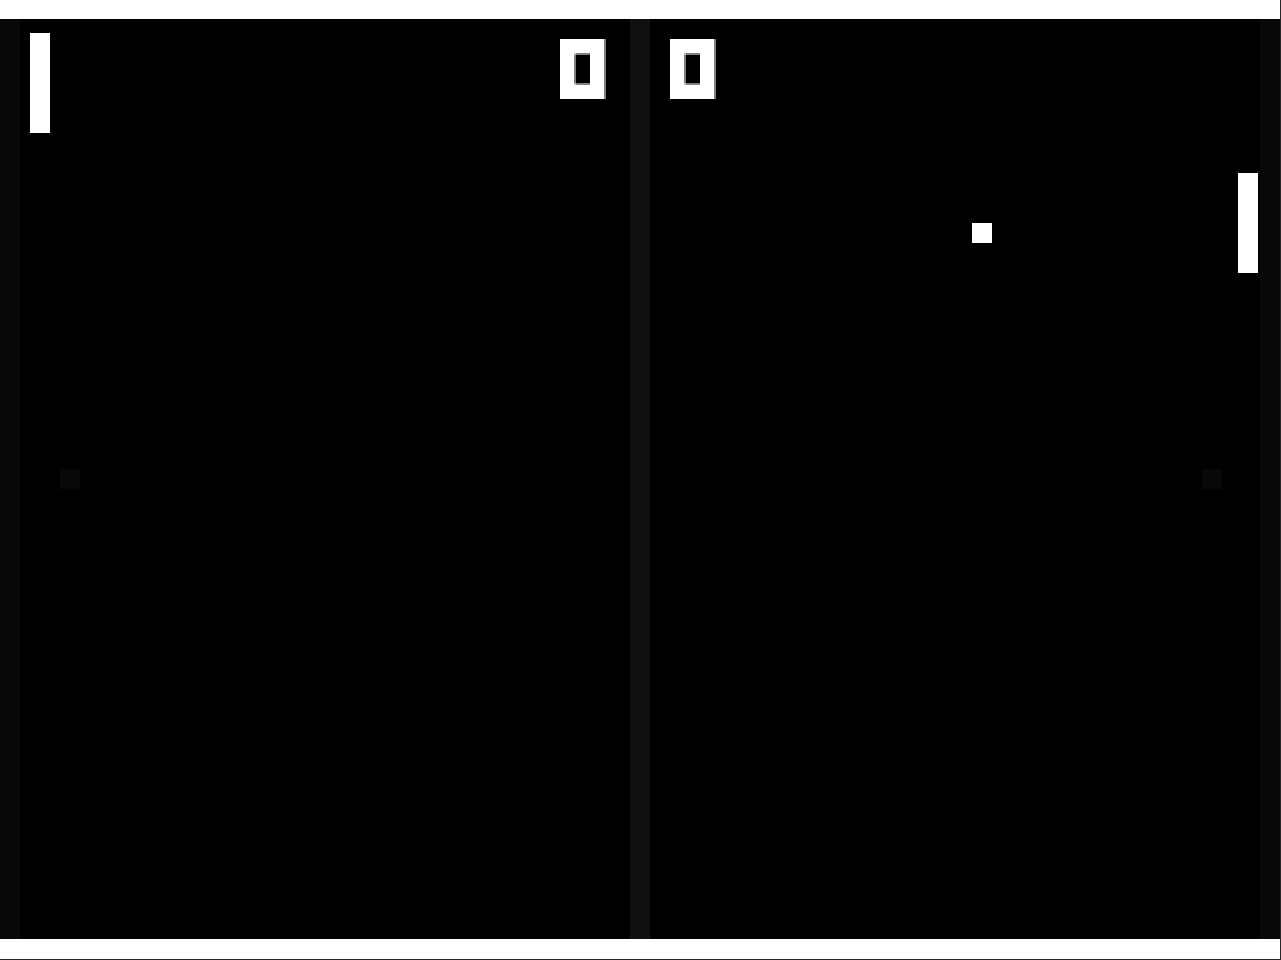 Photon Game Sample Code